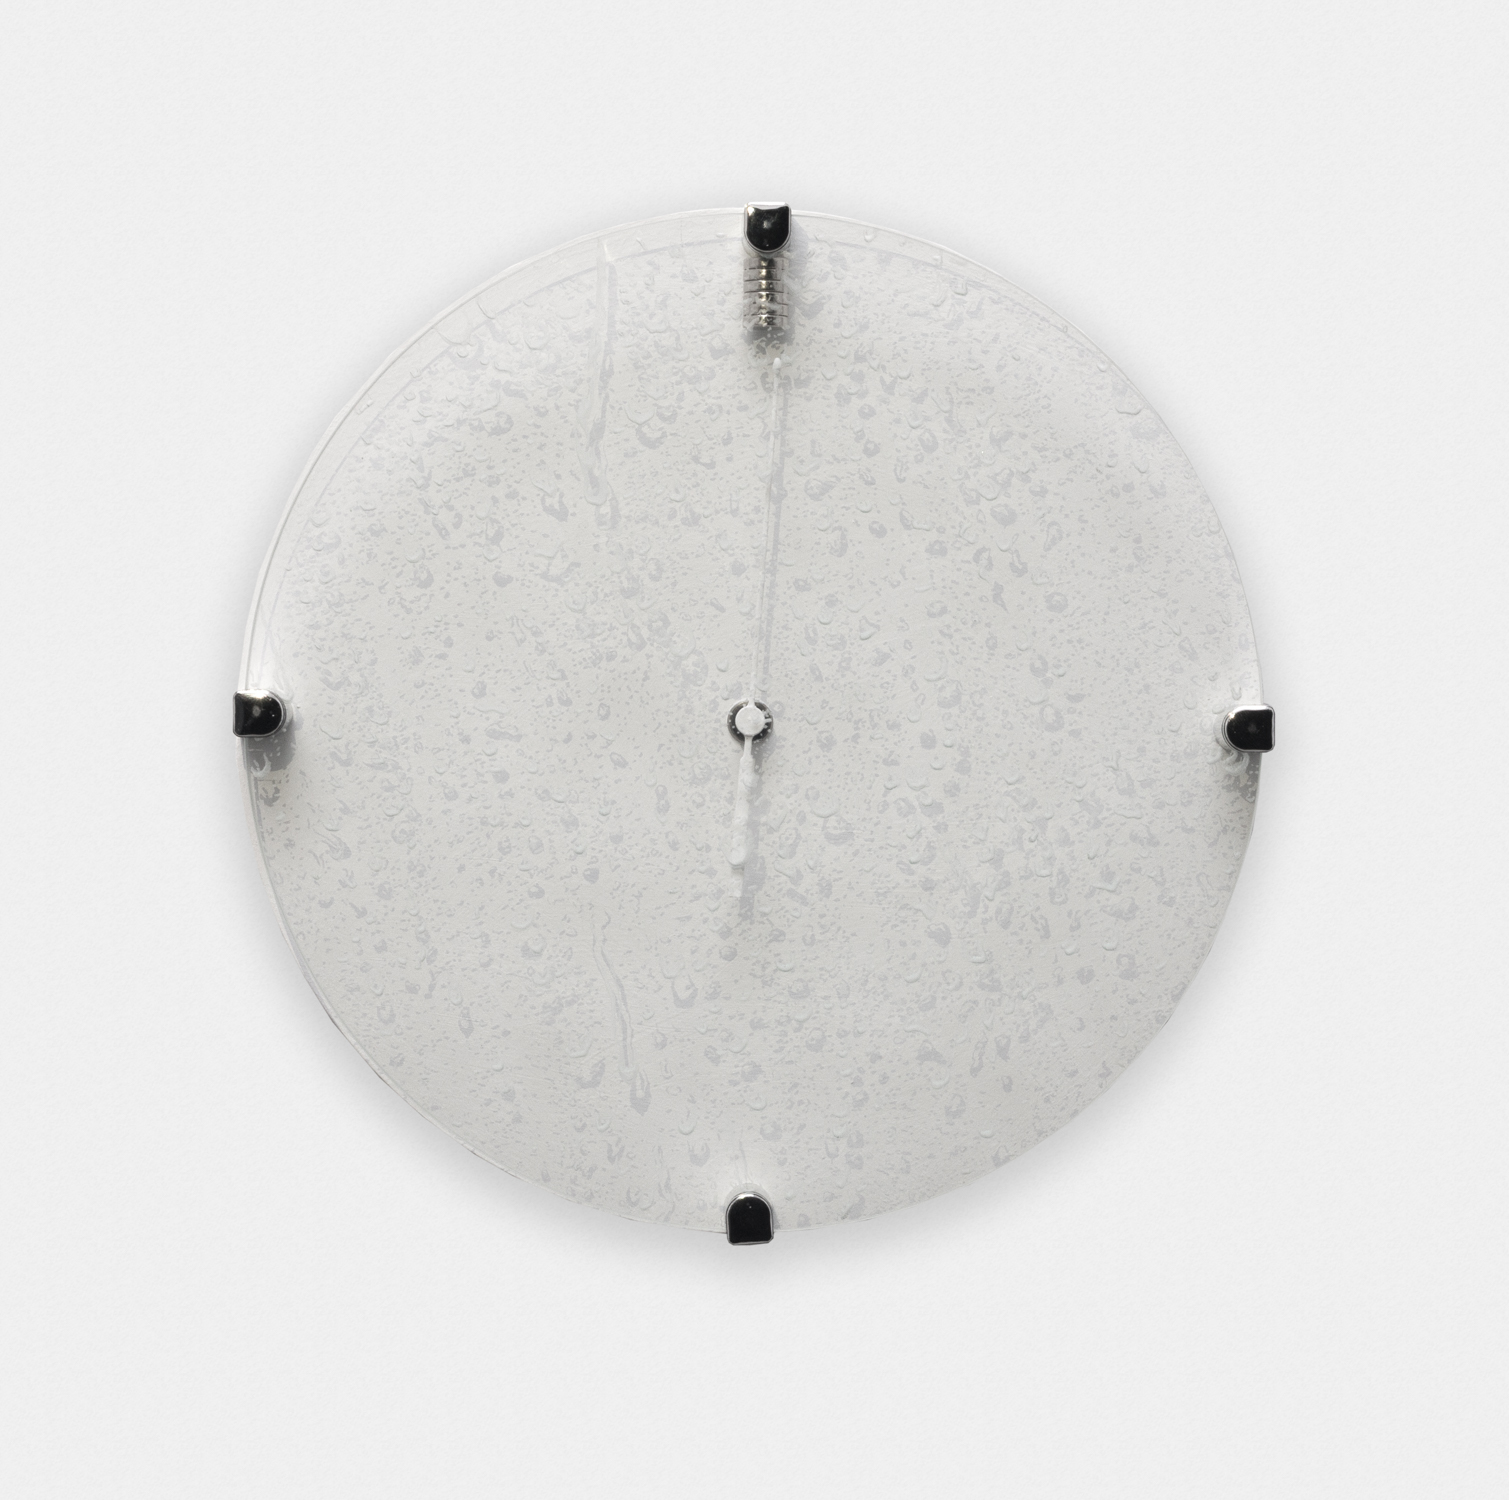 Greg Bae  It Shall All Be Mine (4)  2016 Magnetized atomic clock, magnets, acrylic and engraving on glass 10 ½in diameter GB004